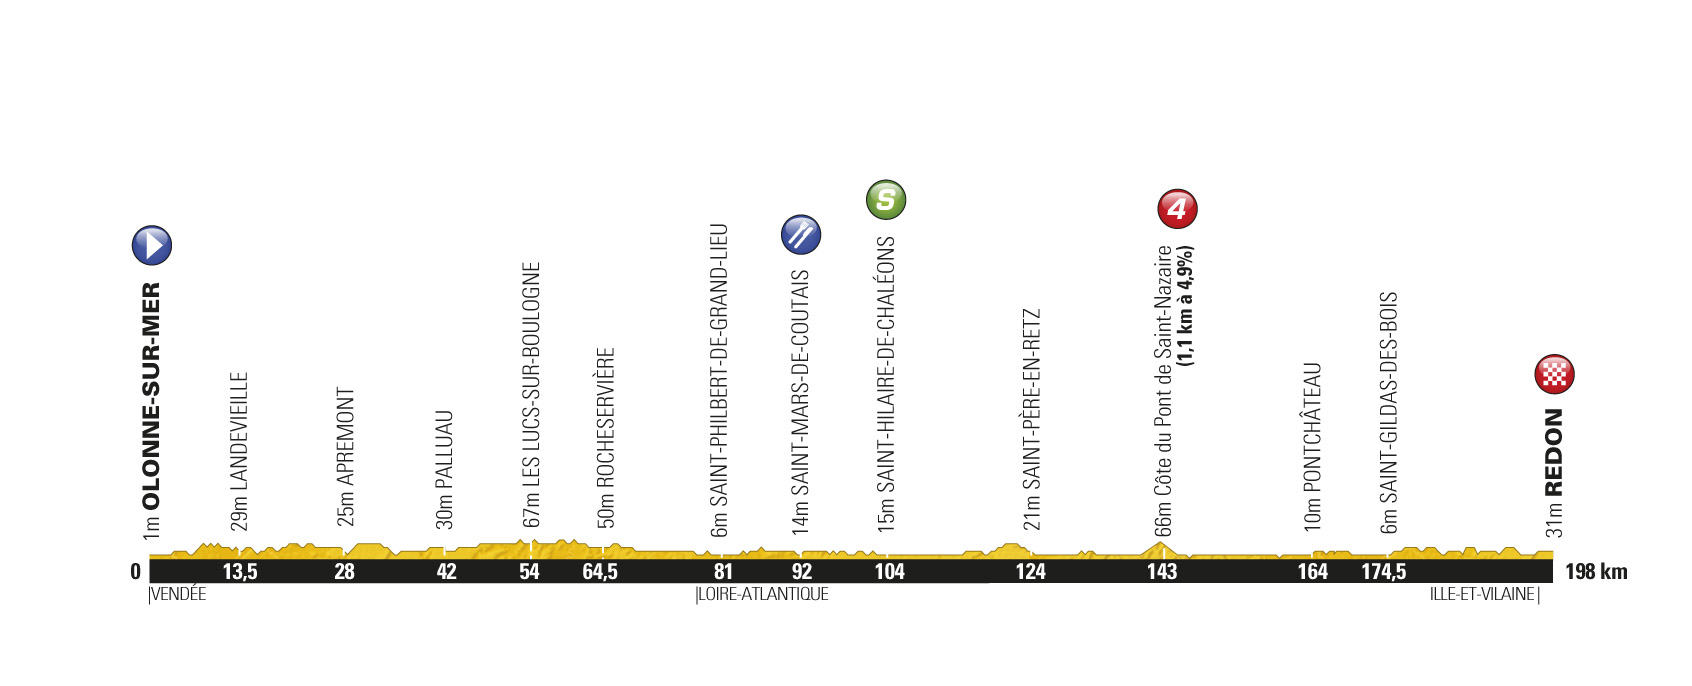 Stage 3 profile, Tour de France 2011